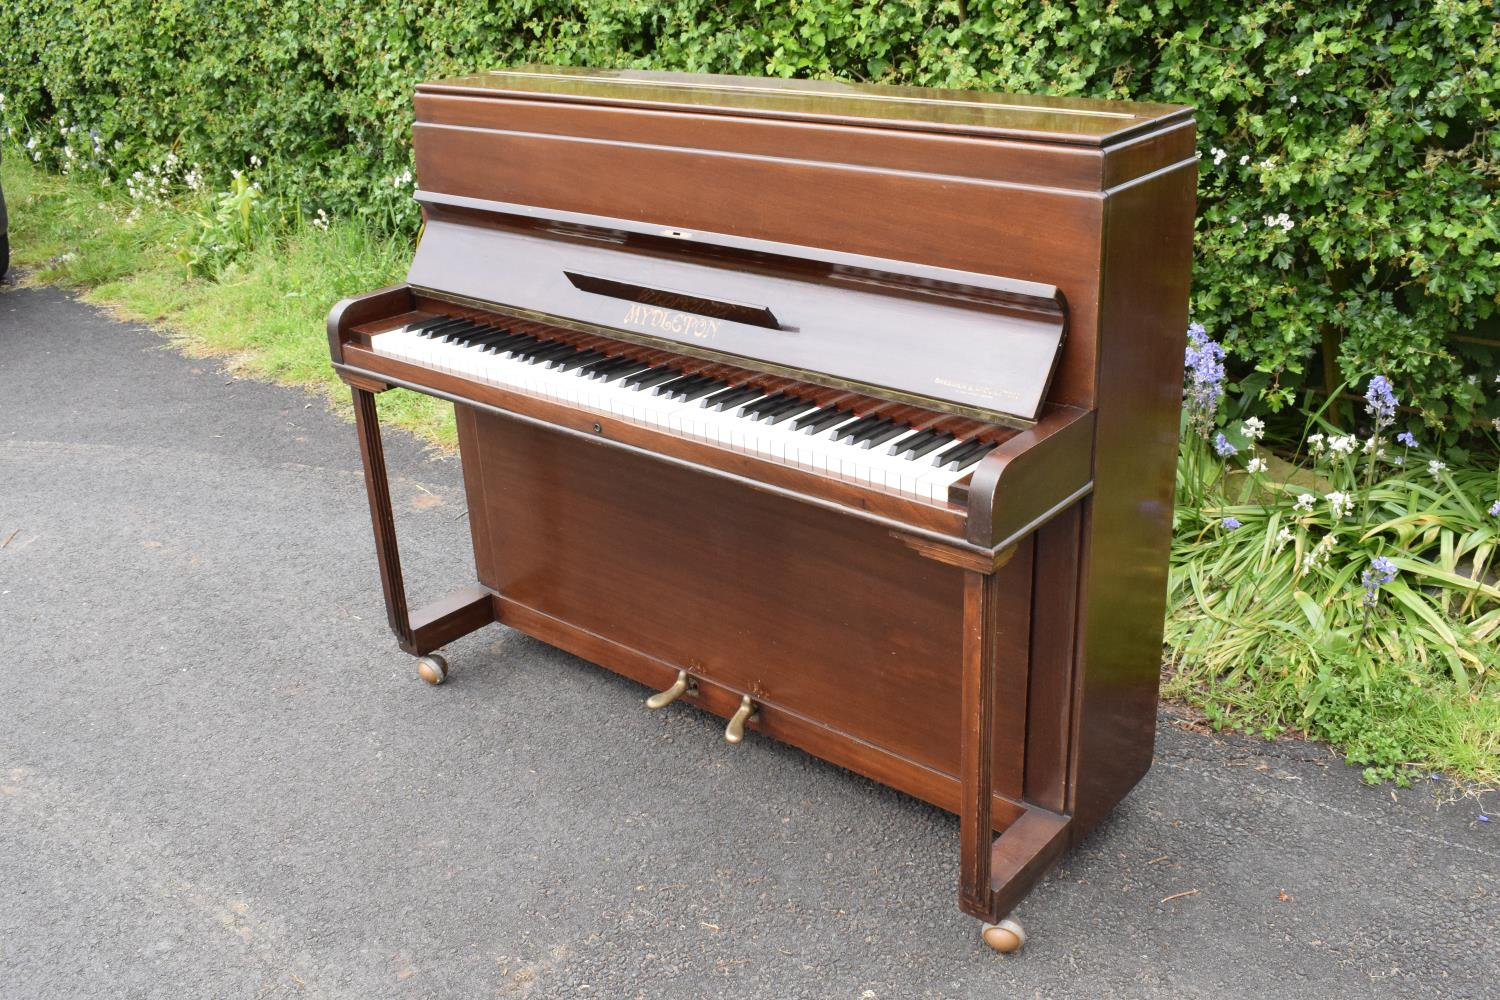 A Breedon and Middleton 'Mydleton' of 42 High Street Crewe upright wooden piano with 85 keys - Image 11 of 11